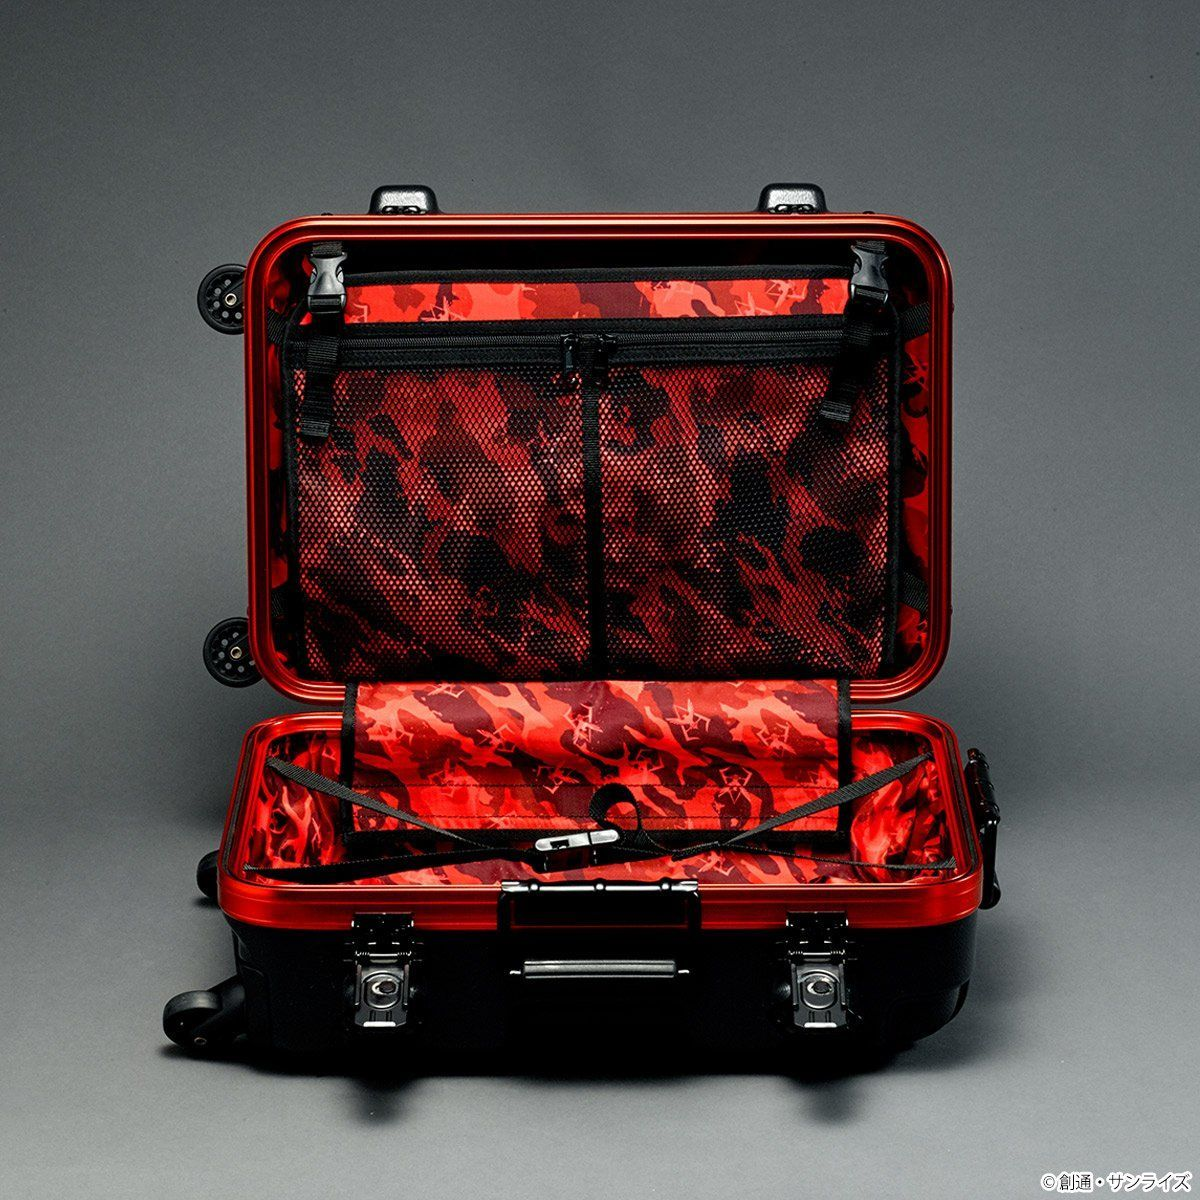 STRICT-G×PROTEX CR-3300 Luggage - Mobile Suit Gundam Char Aznable Version [Oct 2021 Delivery]